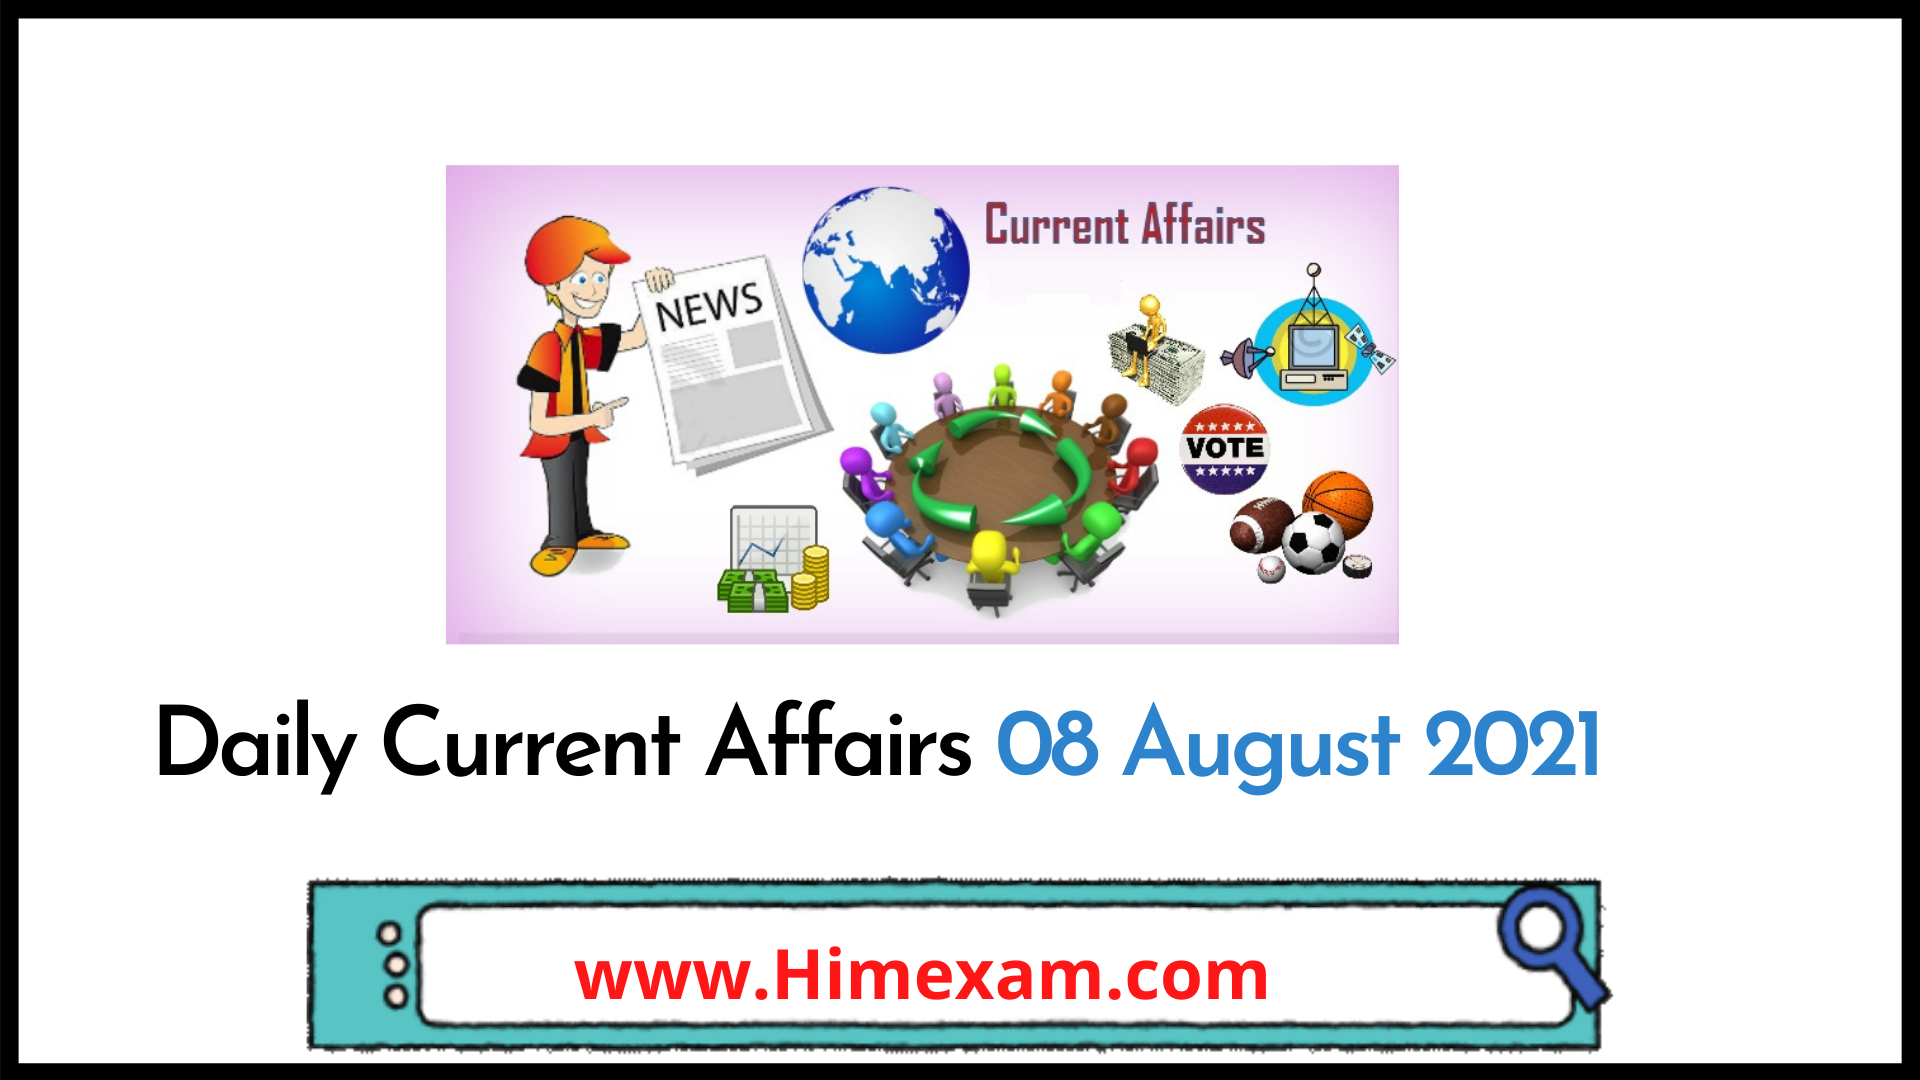 Daily Current Affairs 08 August 2021